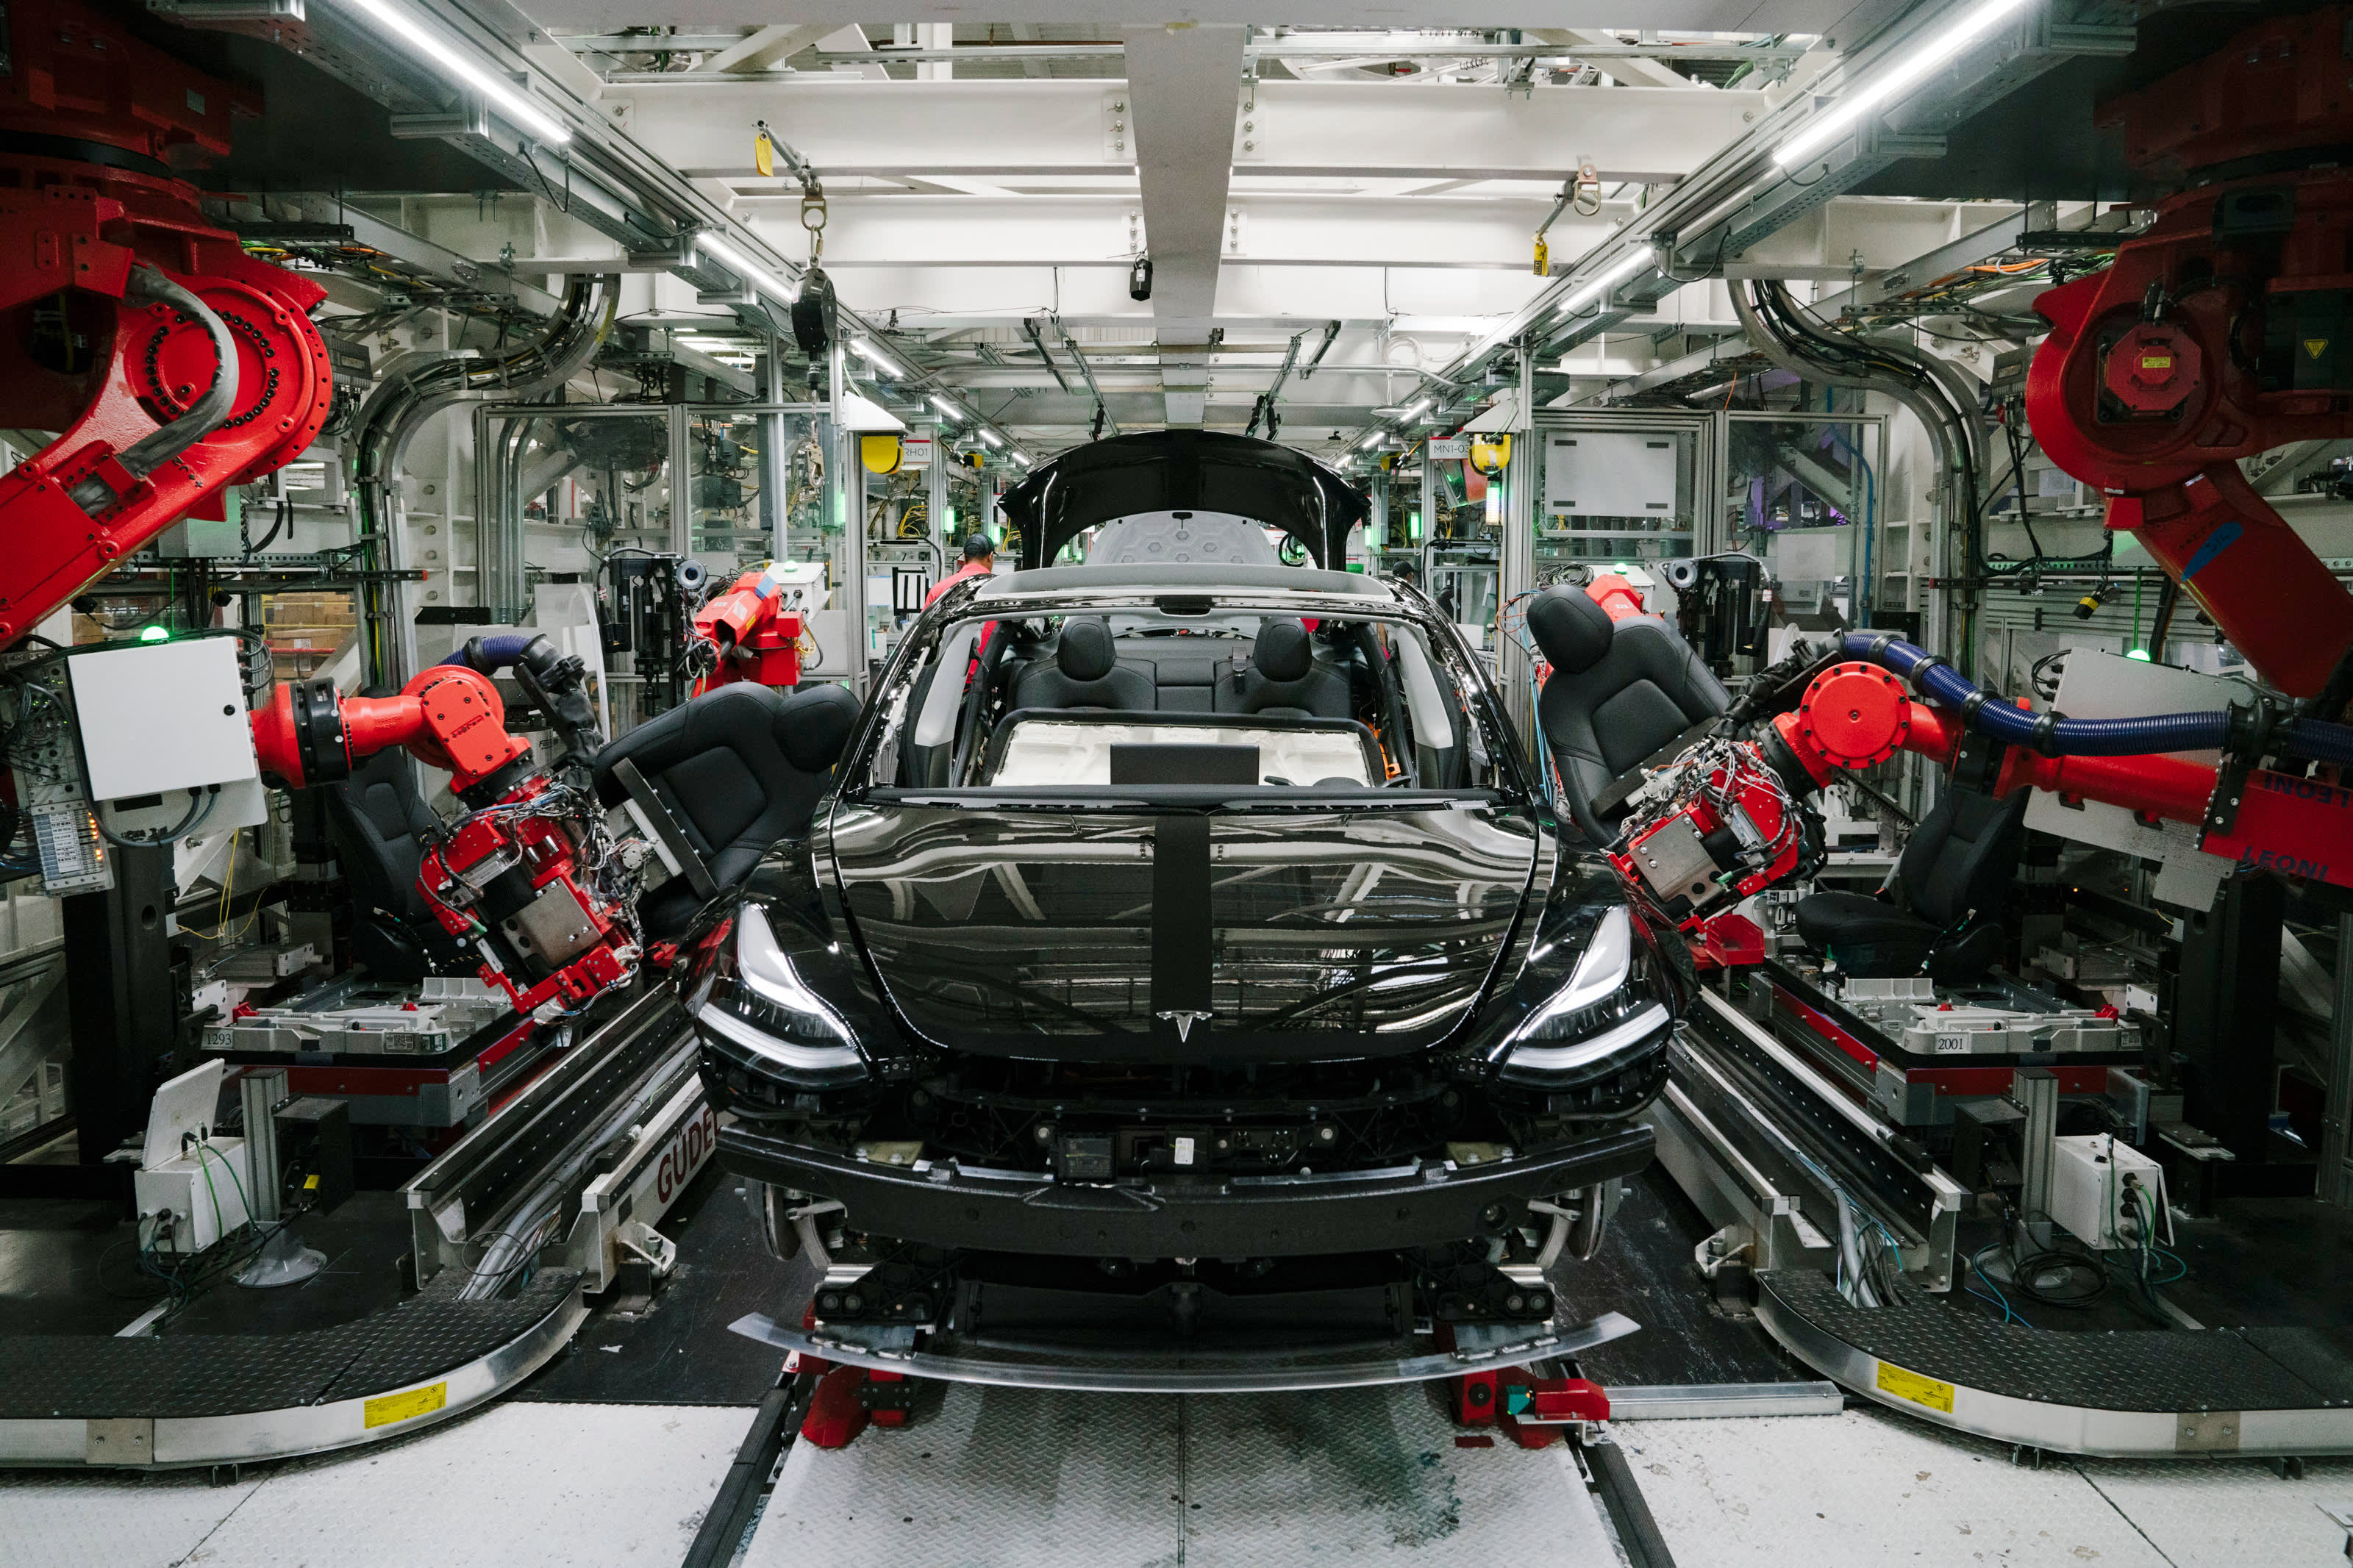 Tesla employees say they took shortcuts, worked through harsh conditions to meet Model 3 production goals